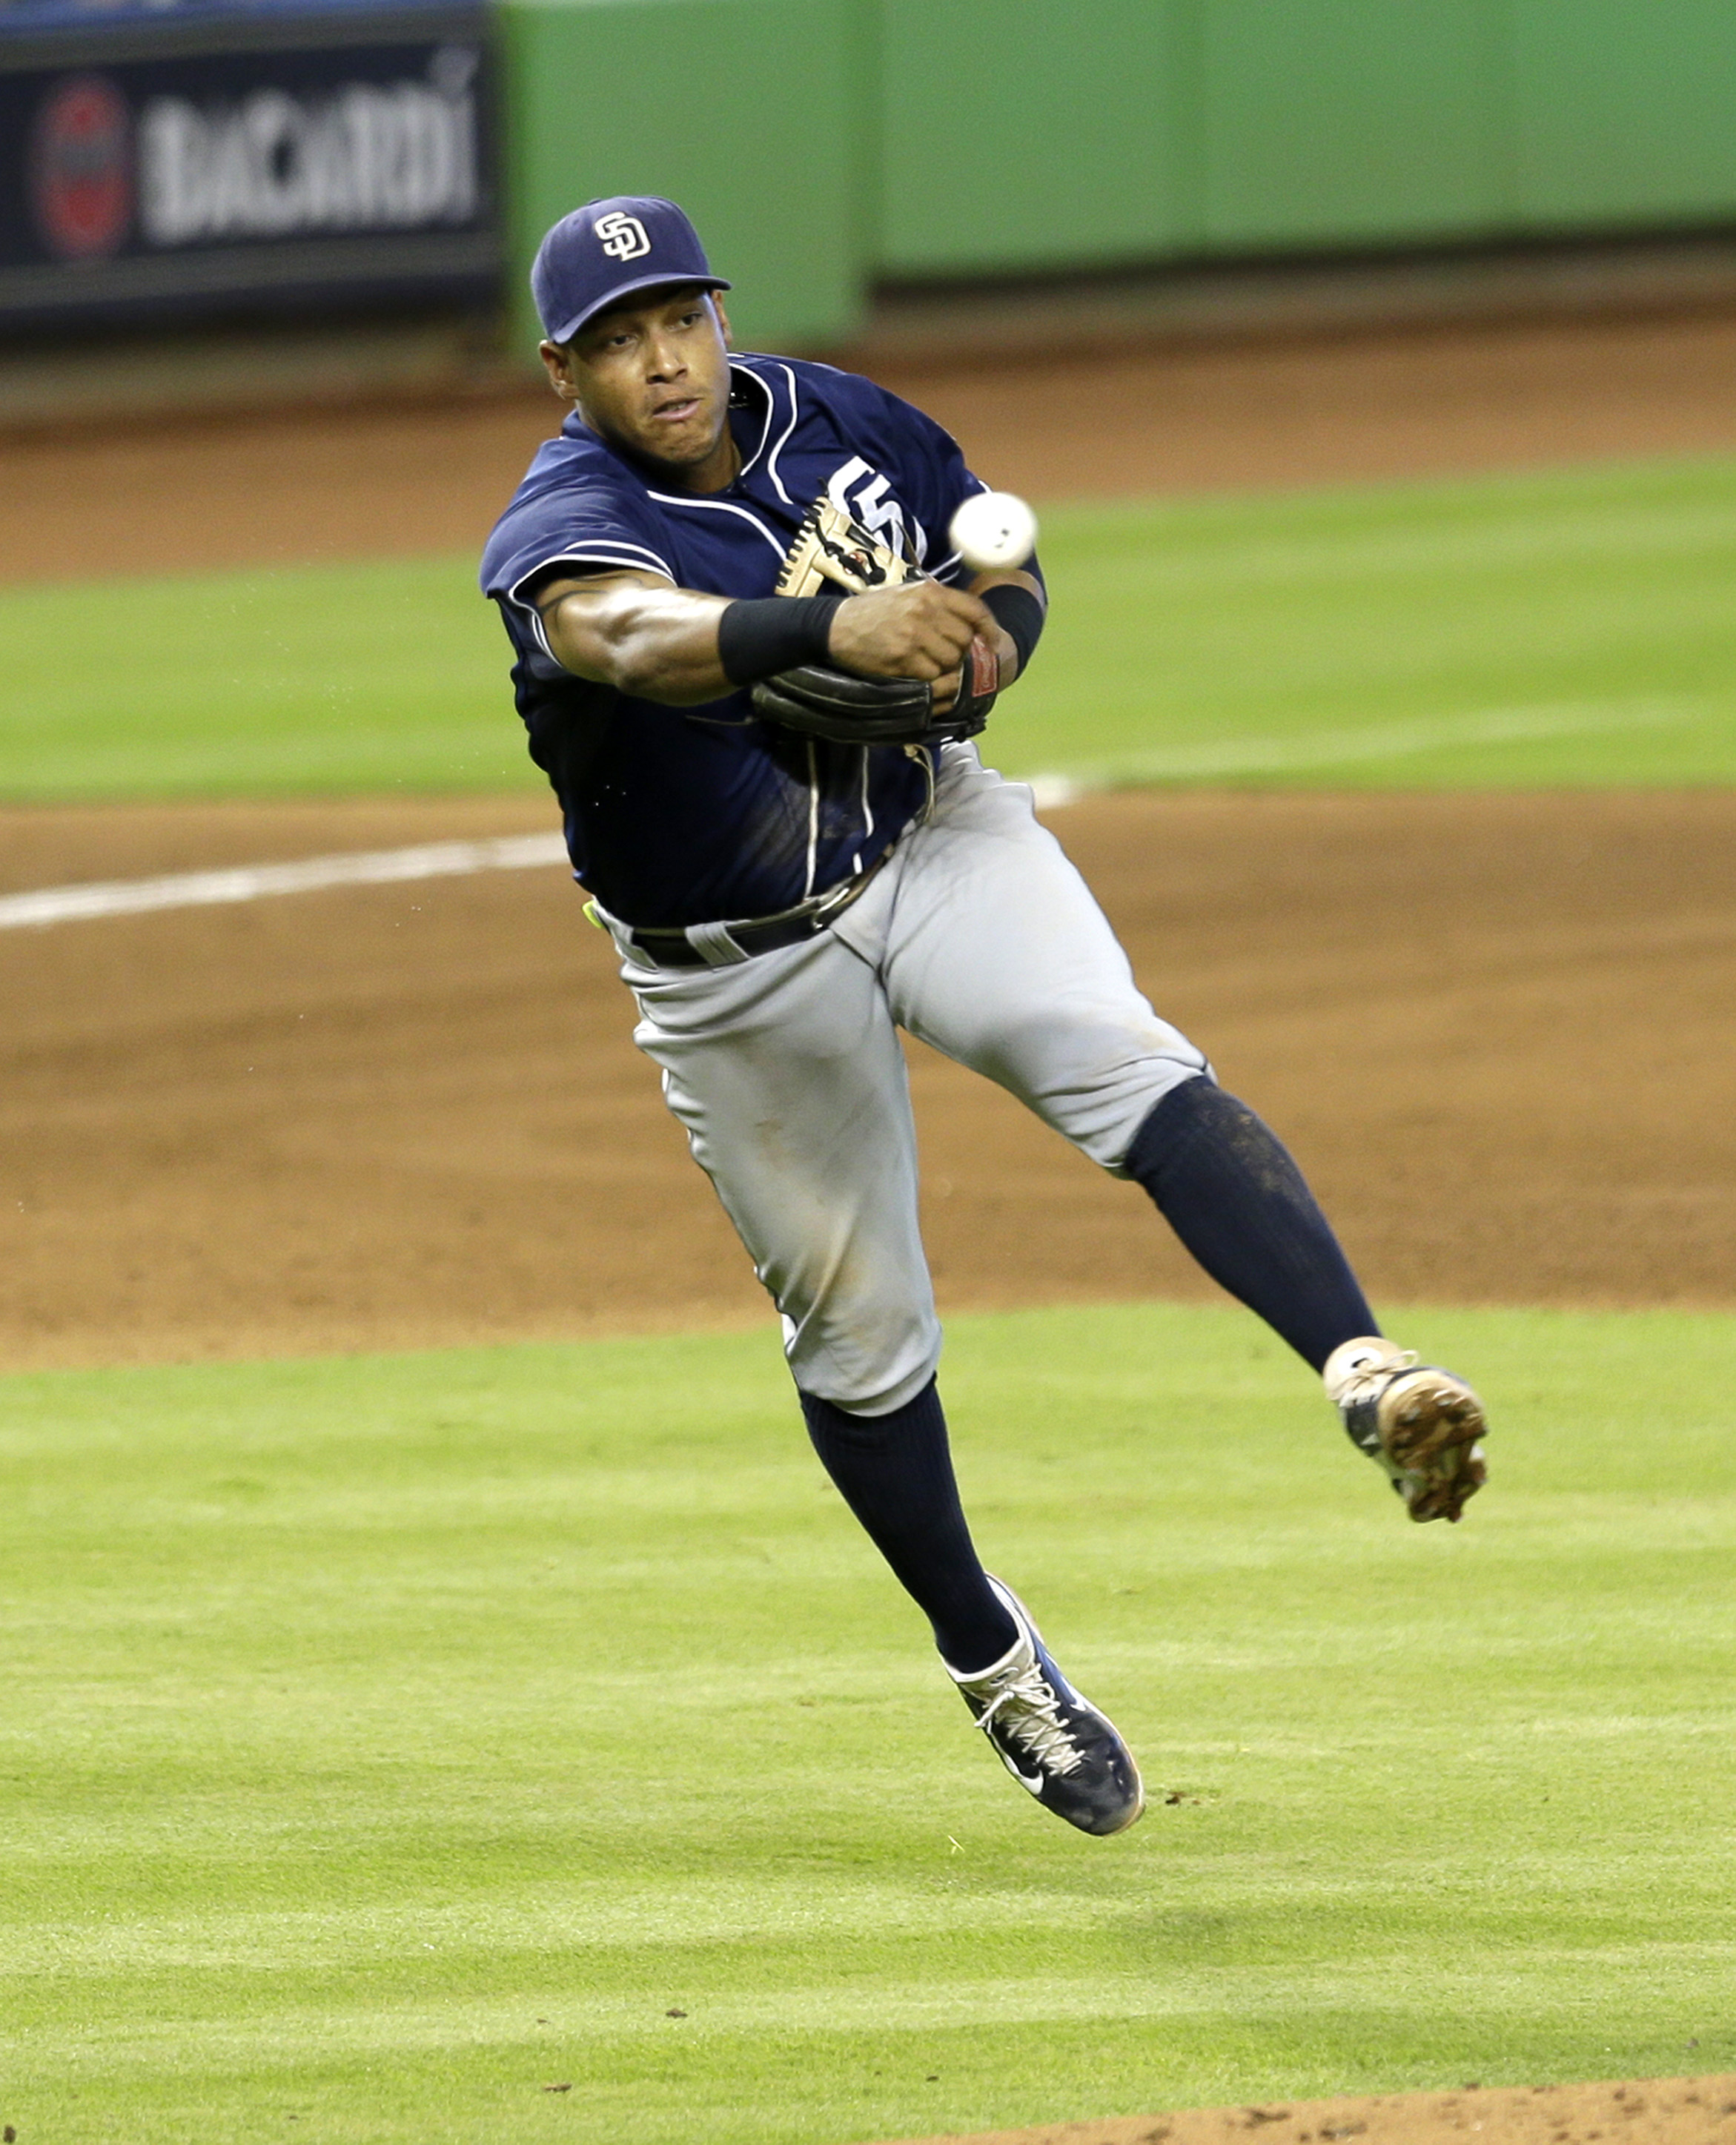 San Diego Padres third baseman Yangervis Solarte throws out Miami Marlins' Miguel Rojas at first base after fielding a ground ball in the fifth inning of a baseball game, Sunday, Aug. 2, 2015, in Miami. (AP Photo/Alan Diaz)